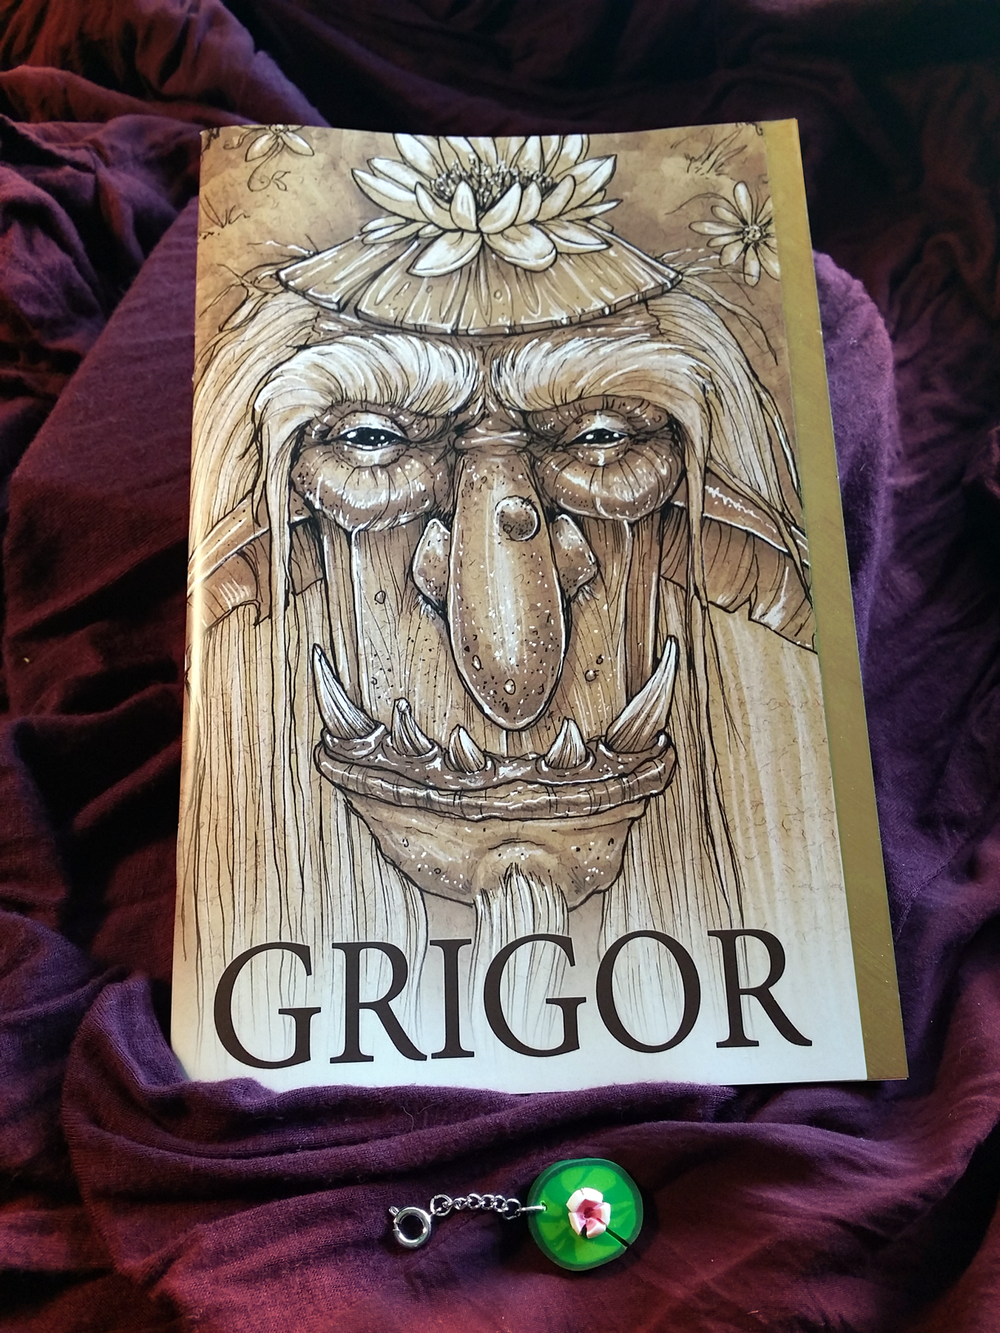 Grigor - An original, self-published Children's Book I wrote and illustrated